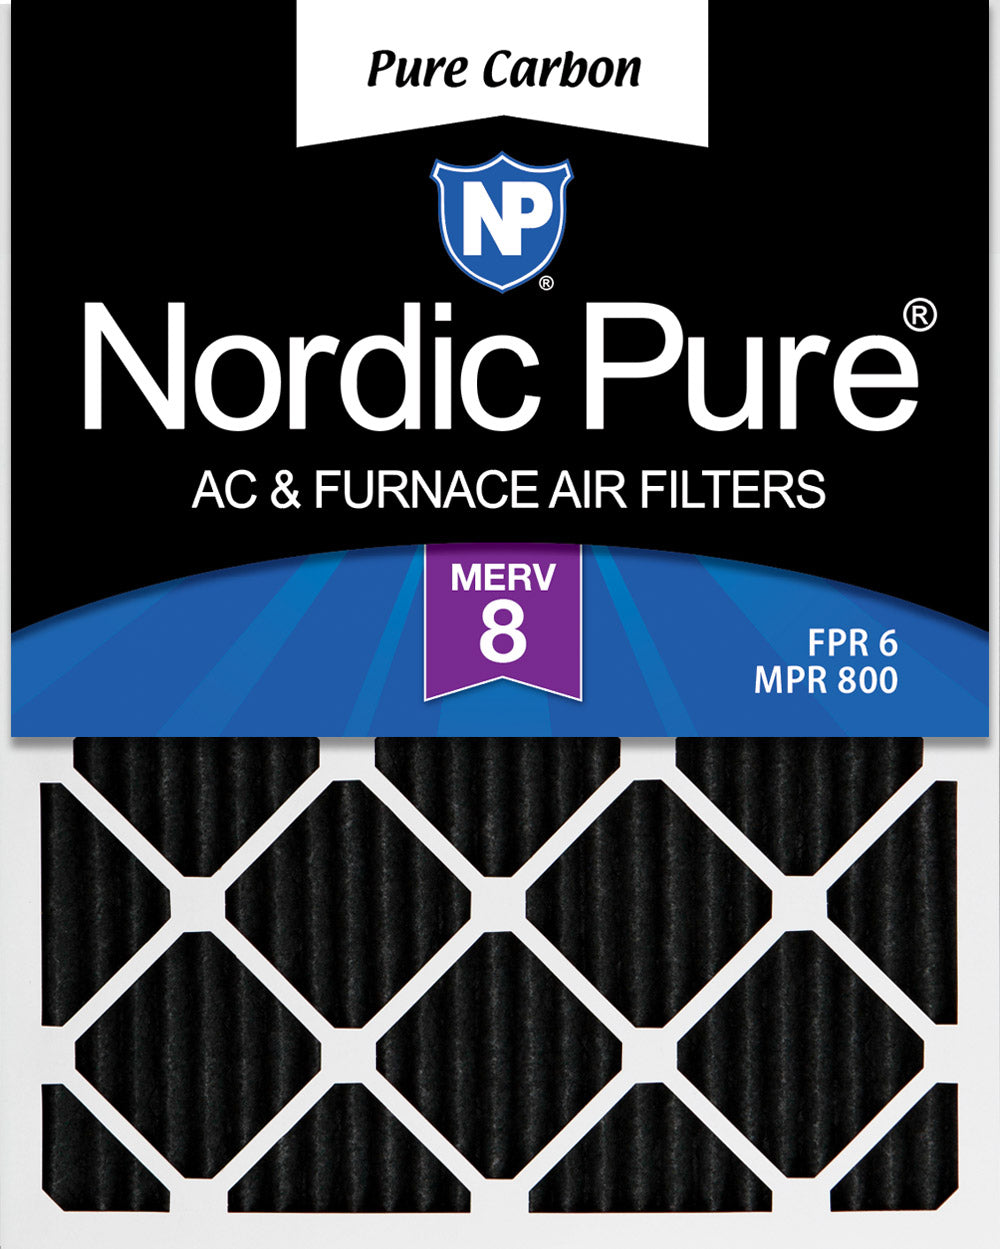 Nordic Pure 14x36x1 MERV 12 Pleated AC Furnace Air Filters 3 Pack